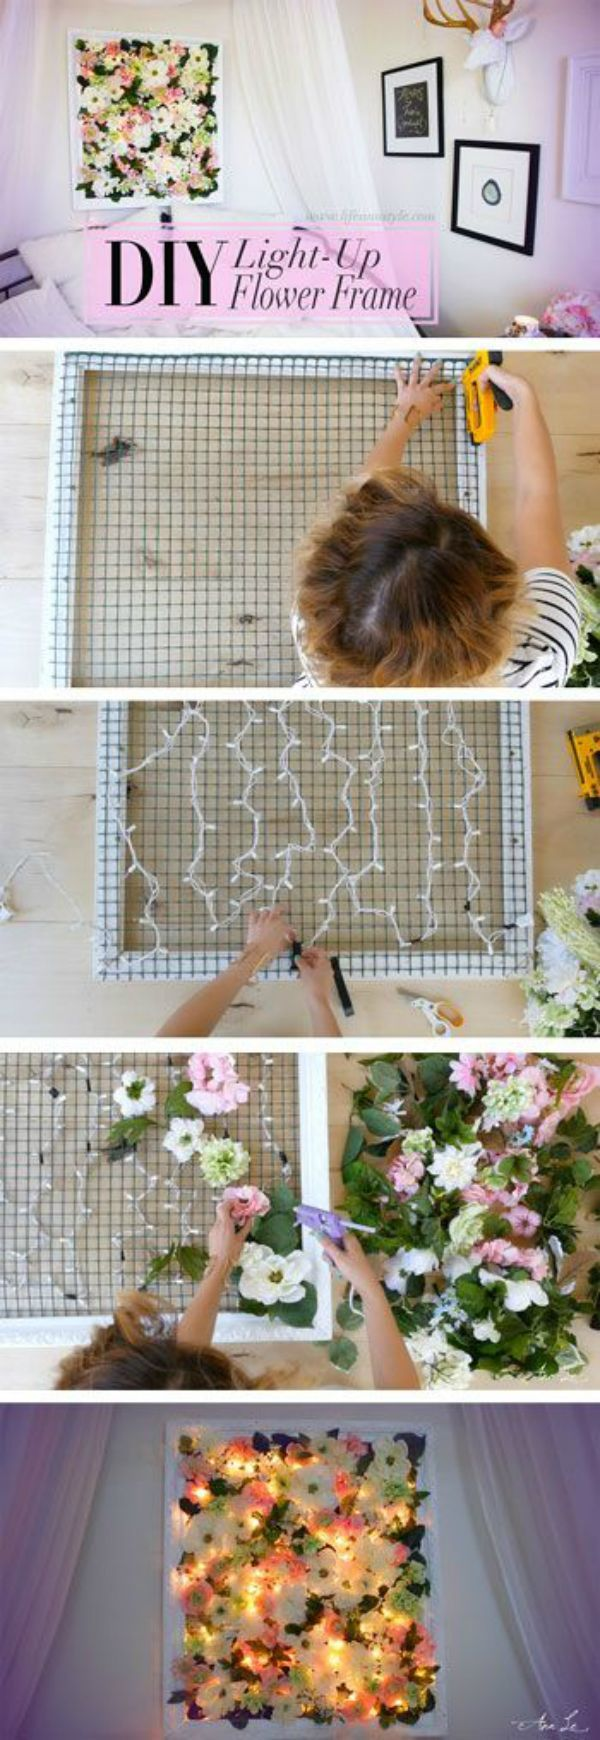 cheap bedroom decor ideas diy light up flower frame http - Cheap Diy Bedroom Decorating Ideas